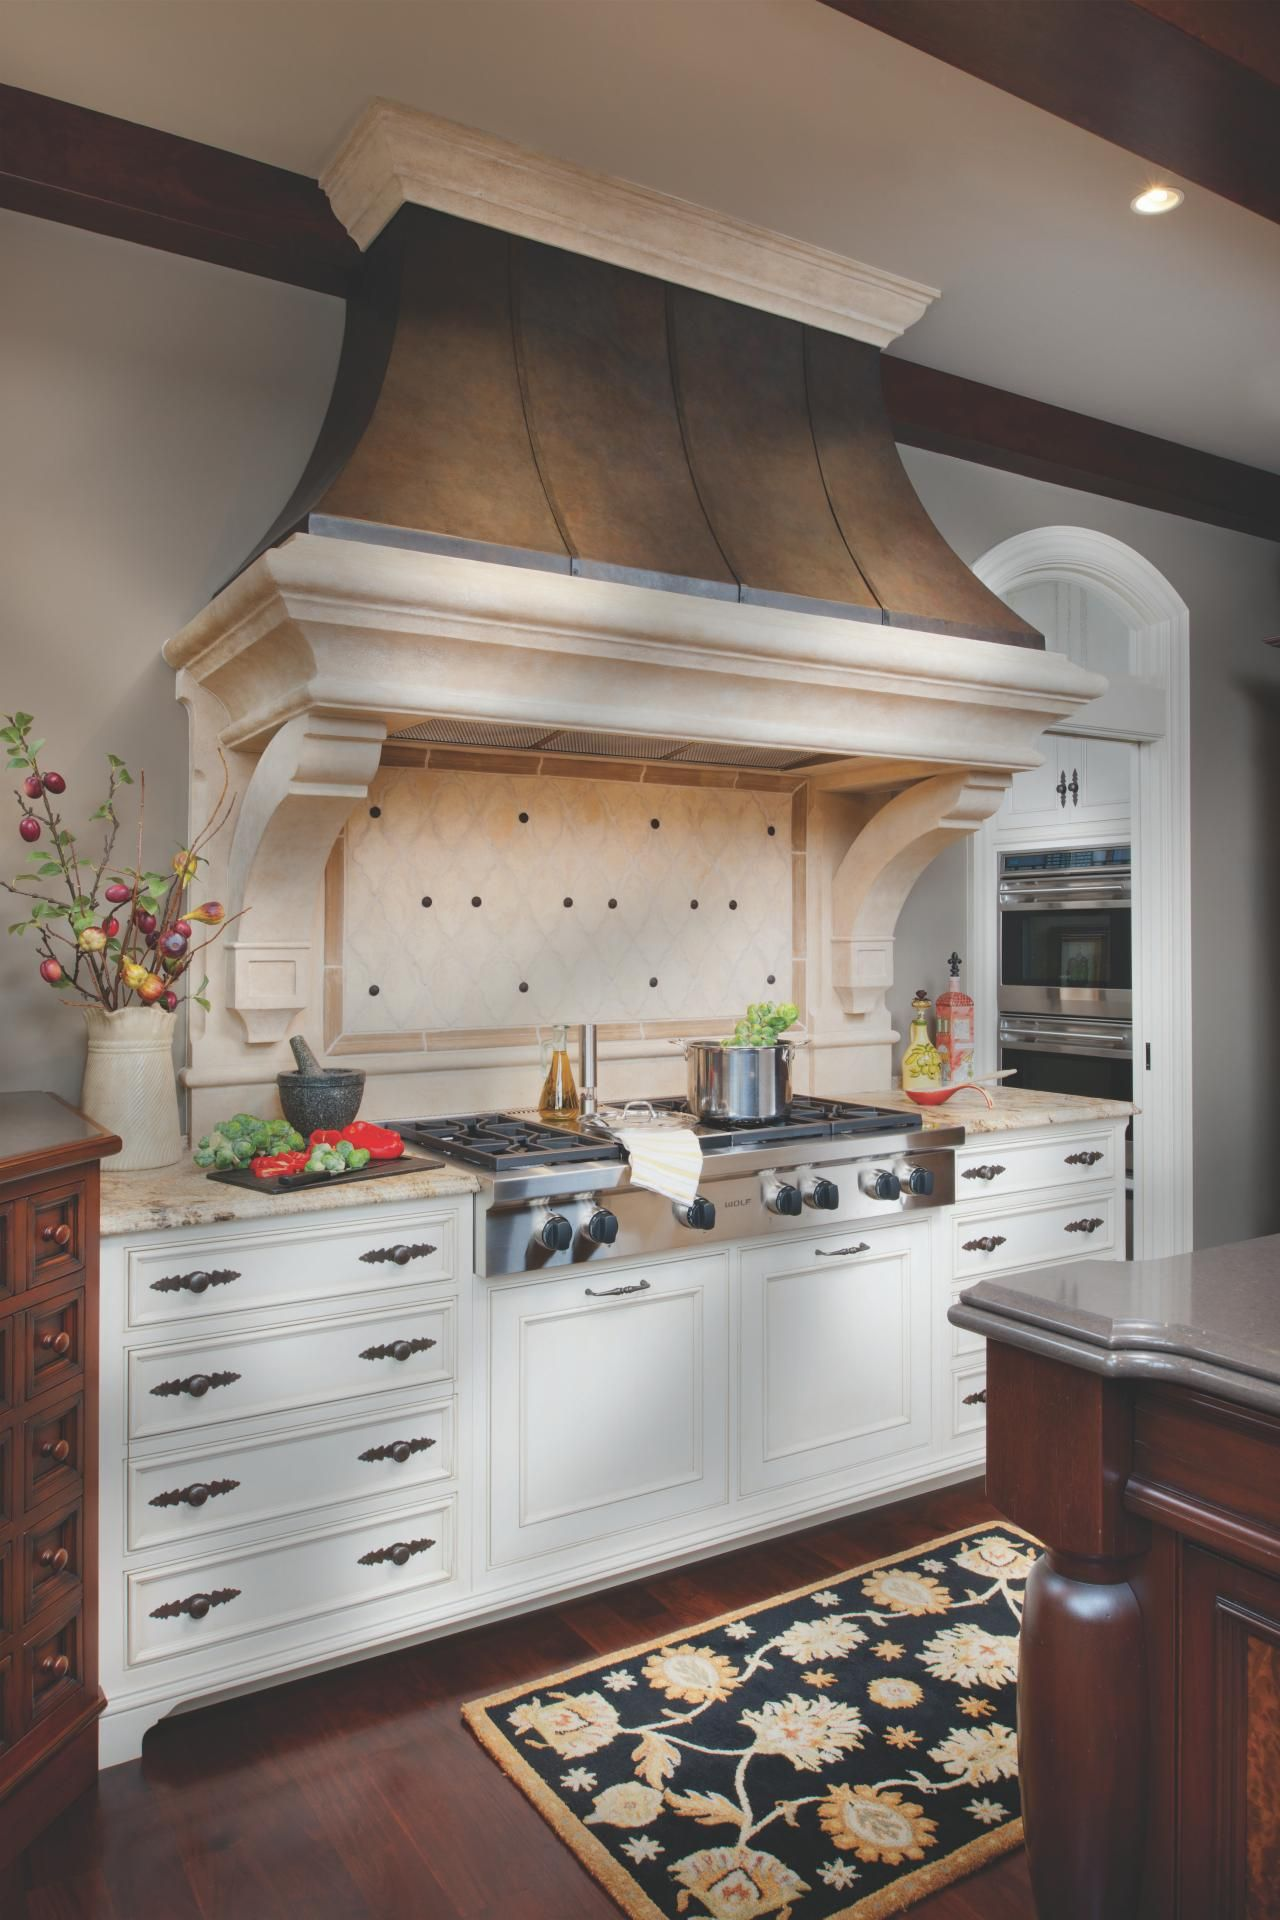 vote in the latest poll from hgtv 2016 nkba kitchen trends kitchen design trends on kitchen decor trends id=42282